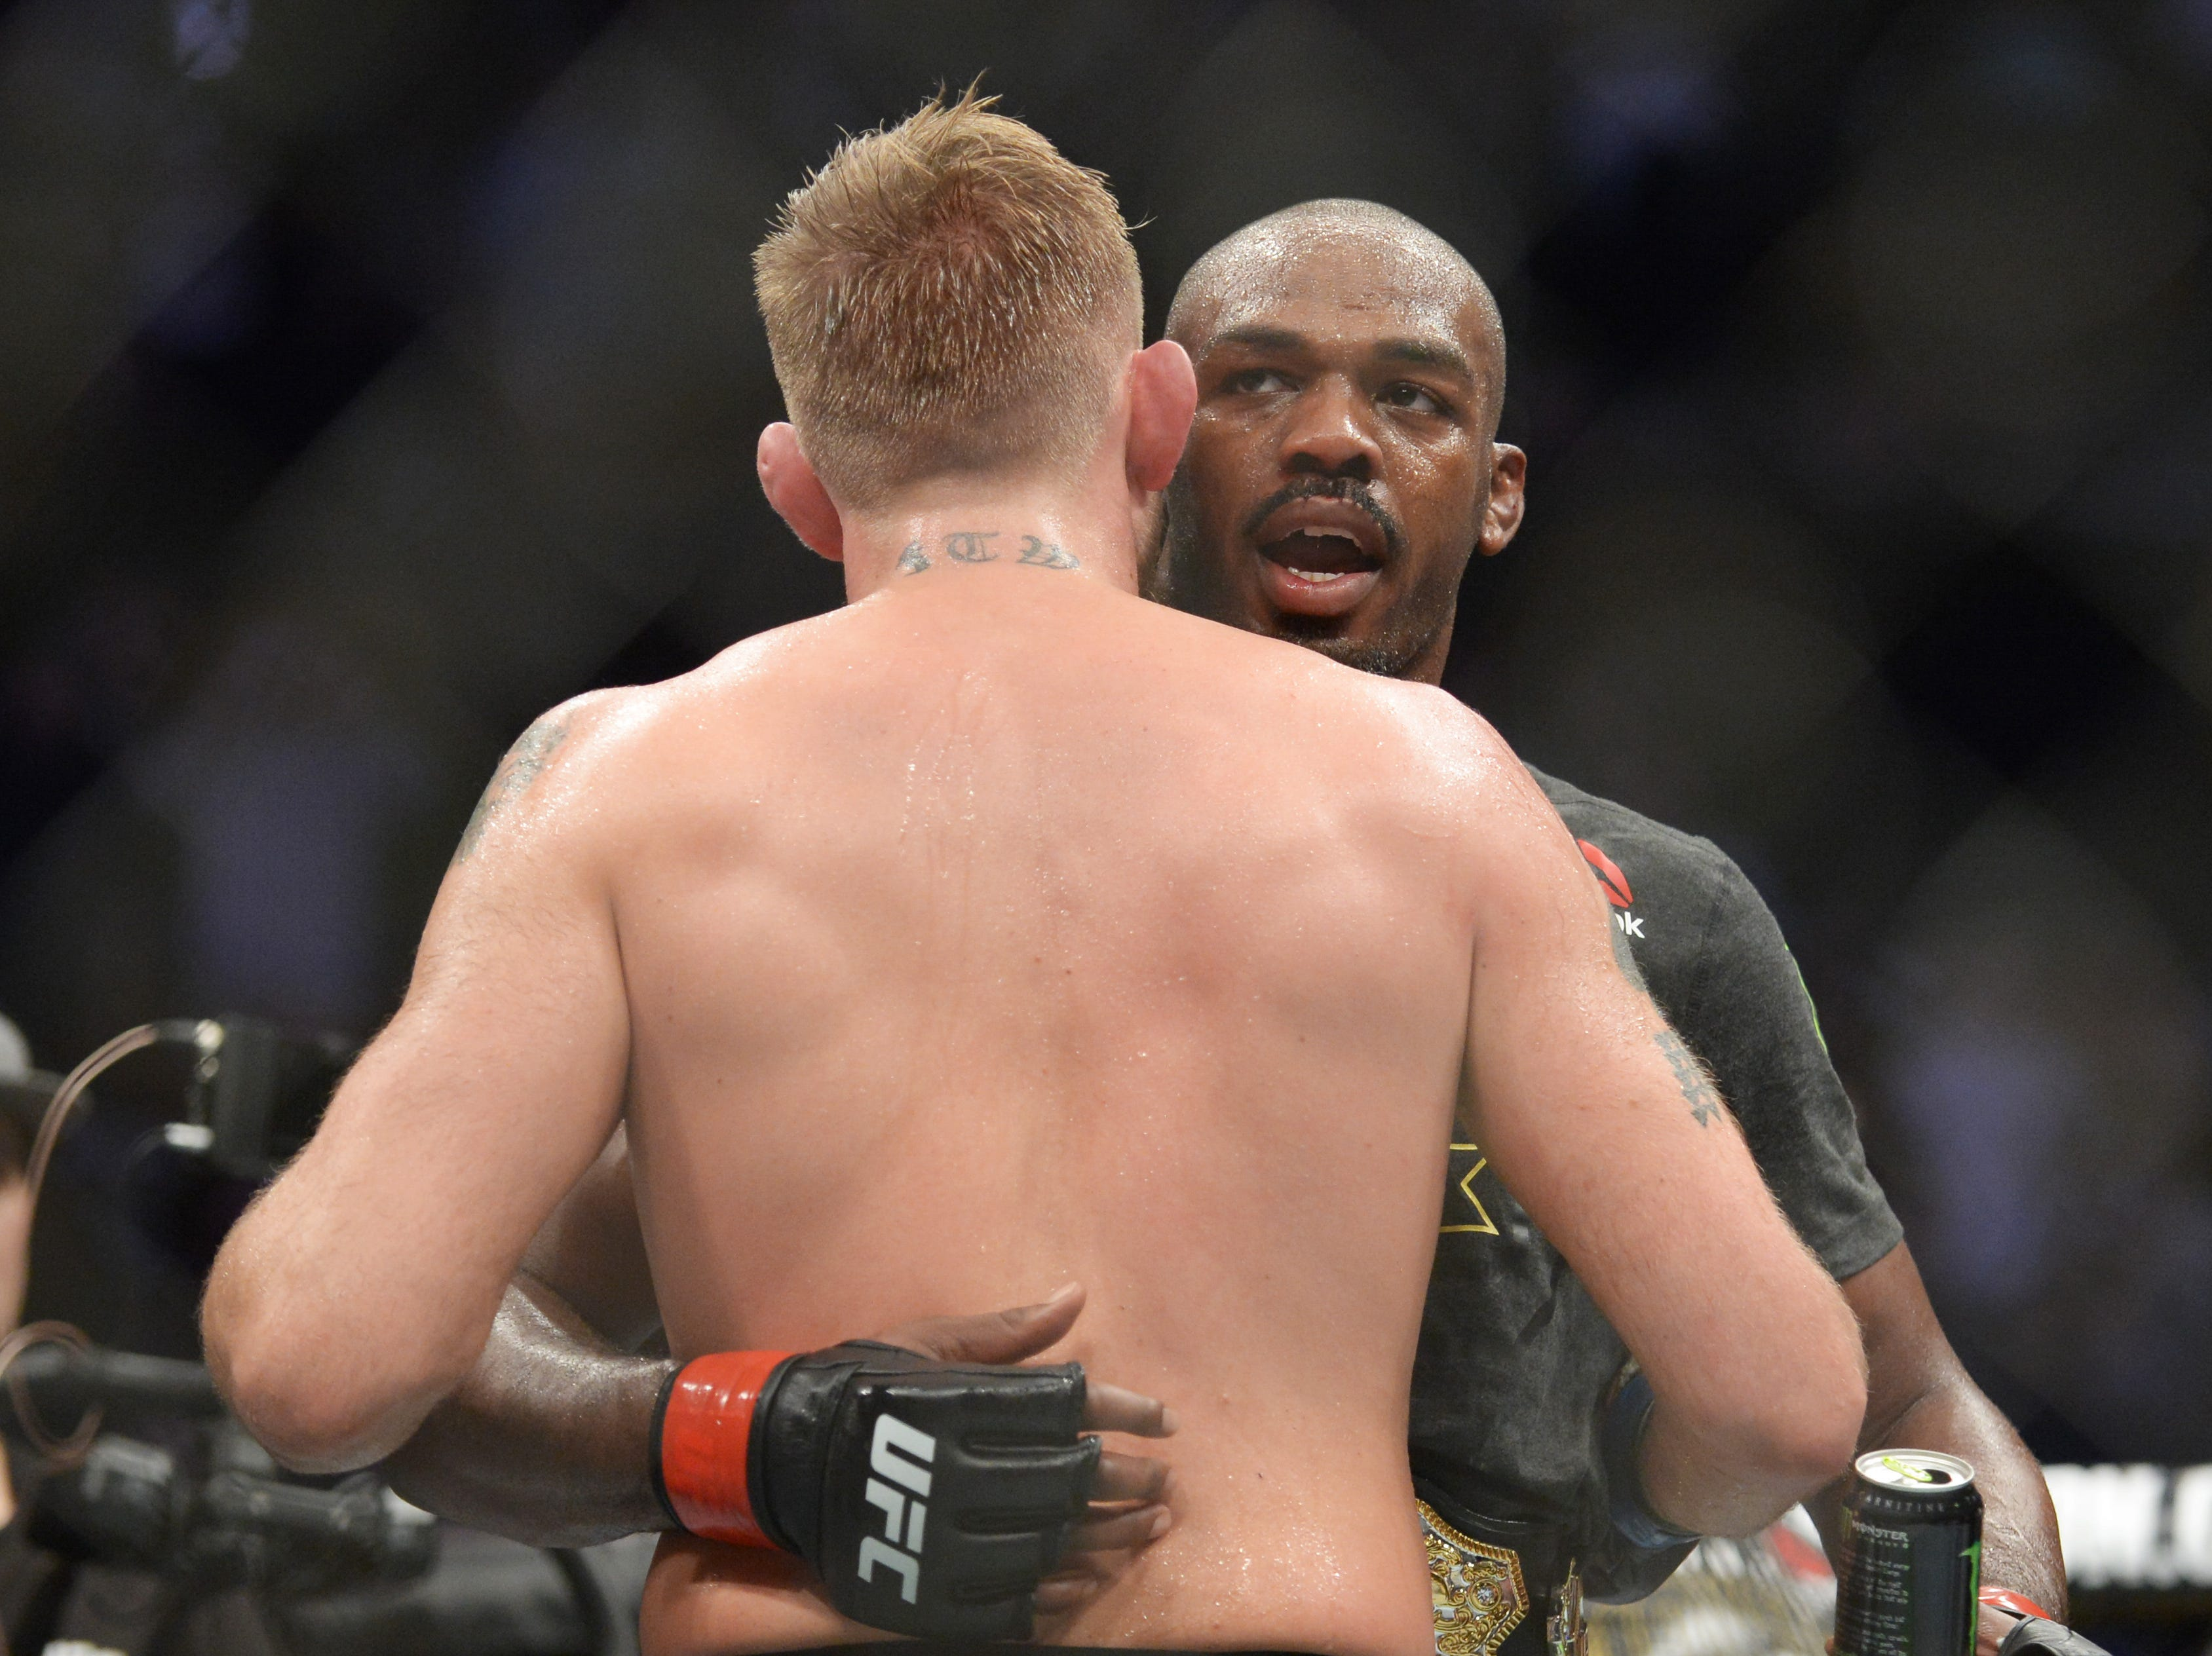 Dec 29, 2018; Los Angeles, CA, USA; Jon Jones (red gloves) hugs Alexander Gustafsson (blue gloves) after their fight during UFC 232 at The Forum. Mandatory Credit: Gary A. Vasquez-USA TODAY Sports